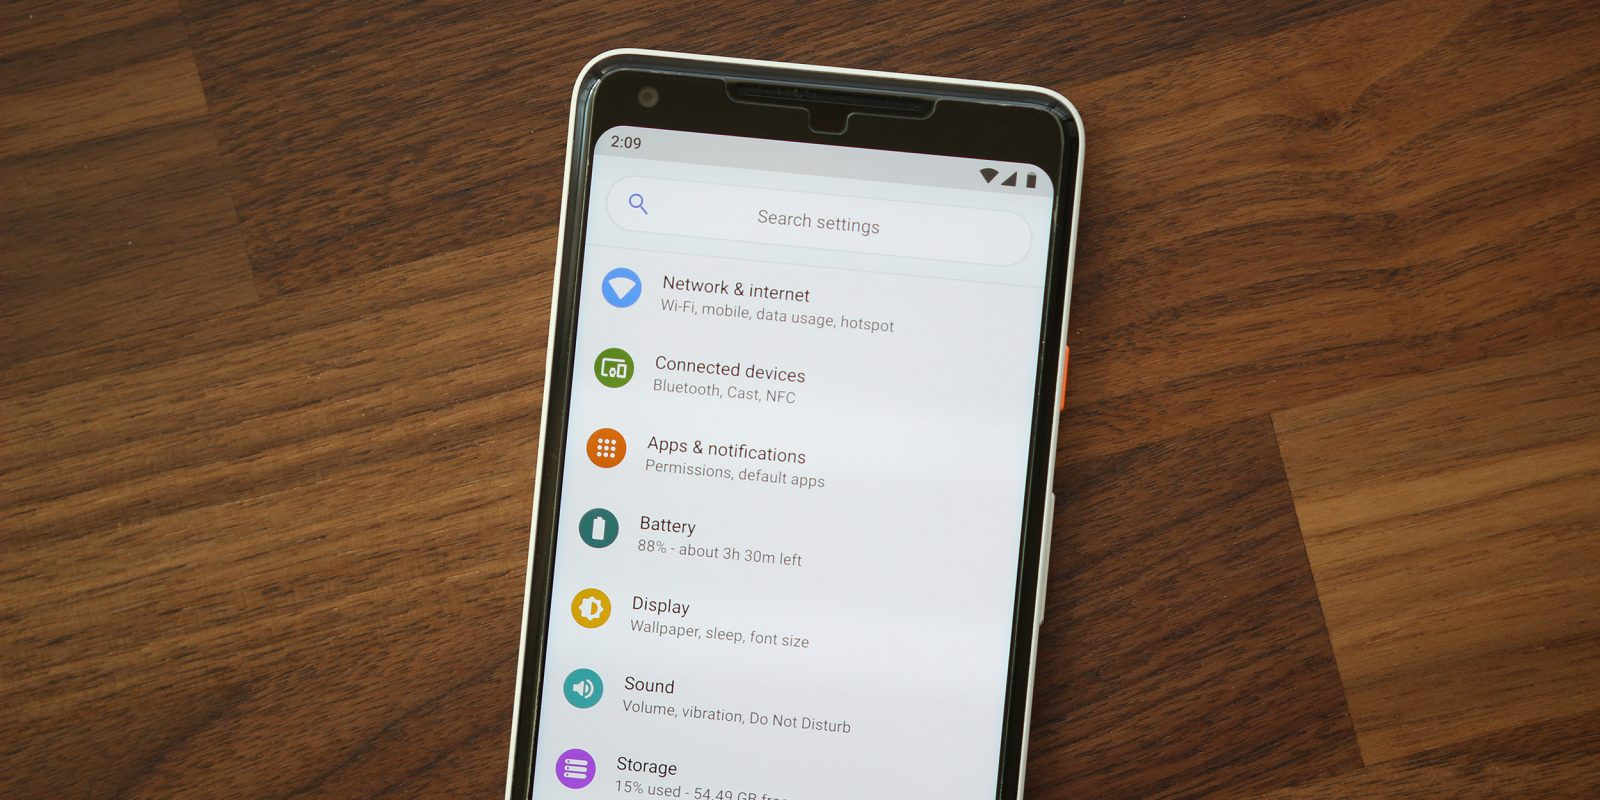 Google Pixel 'Settings Suggestions' uploaded to Play Store